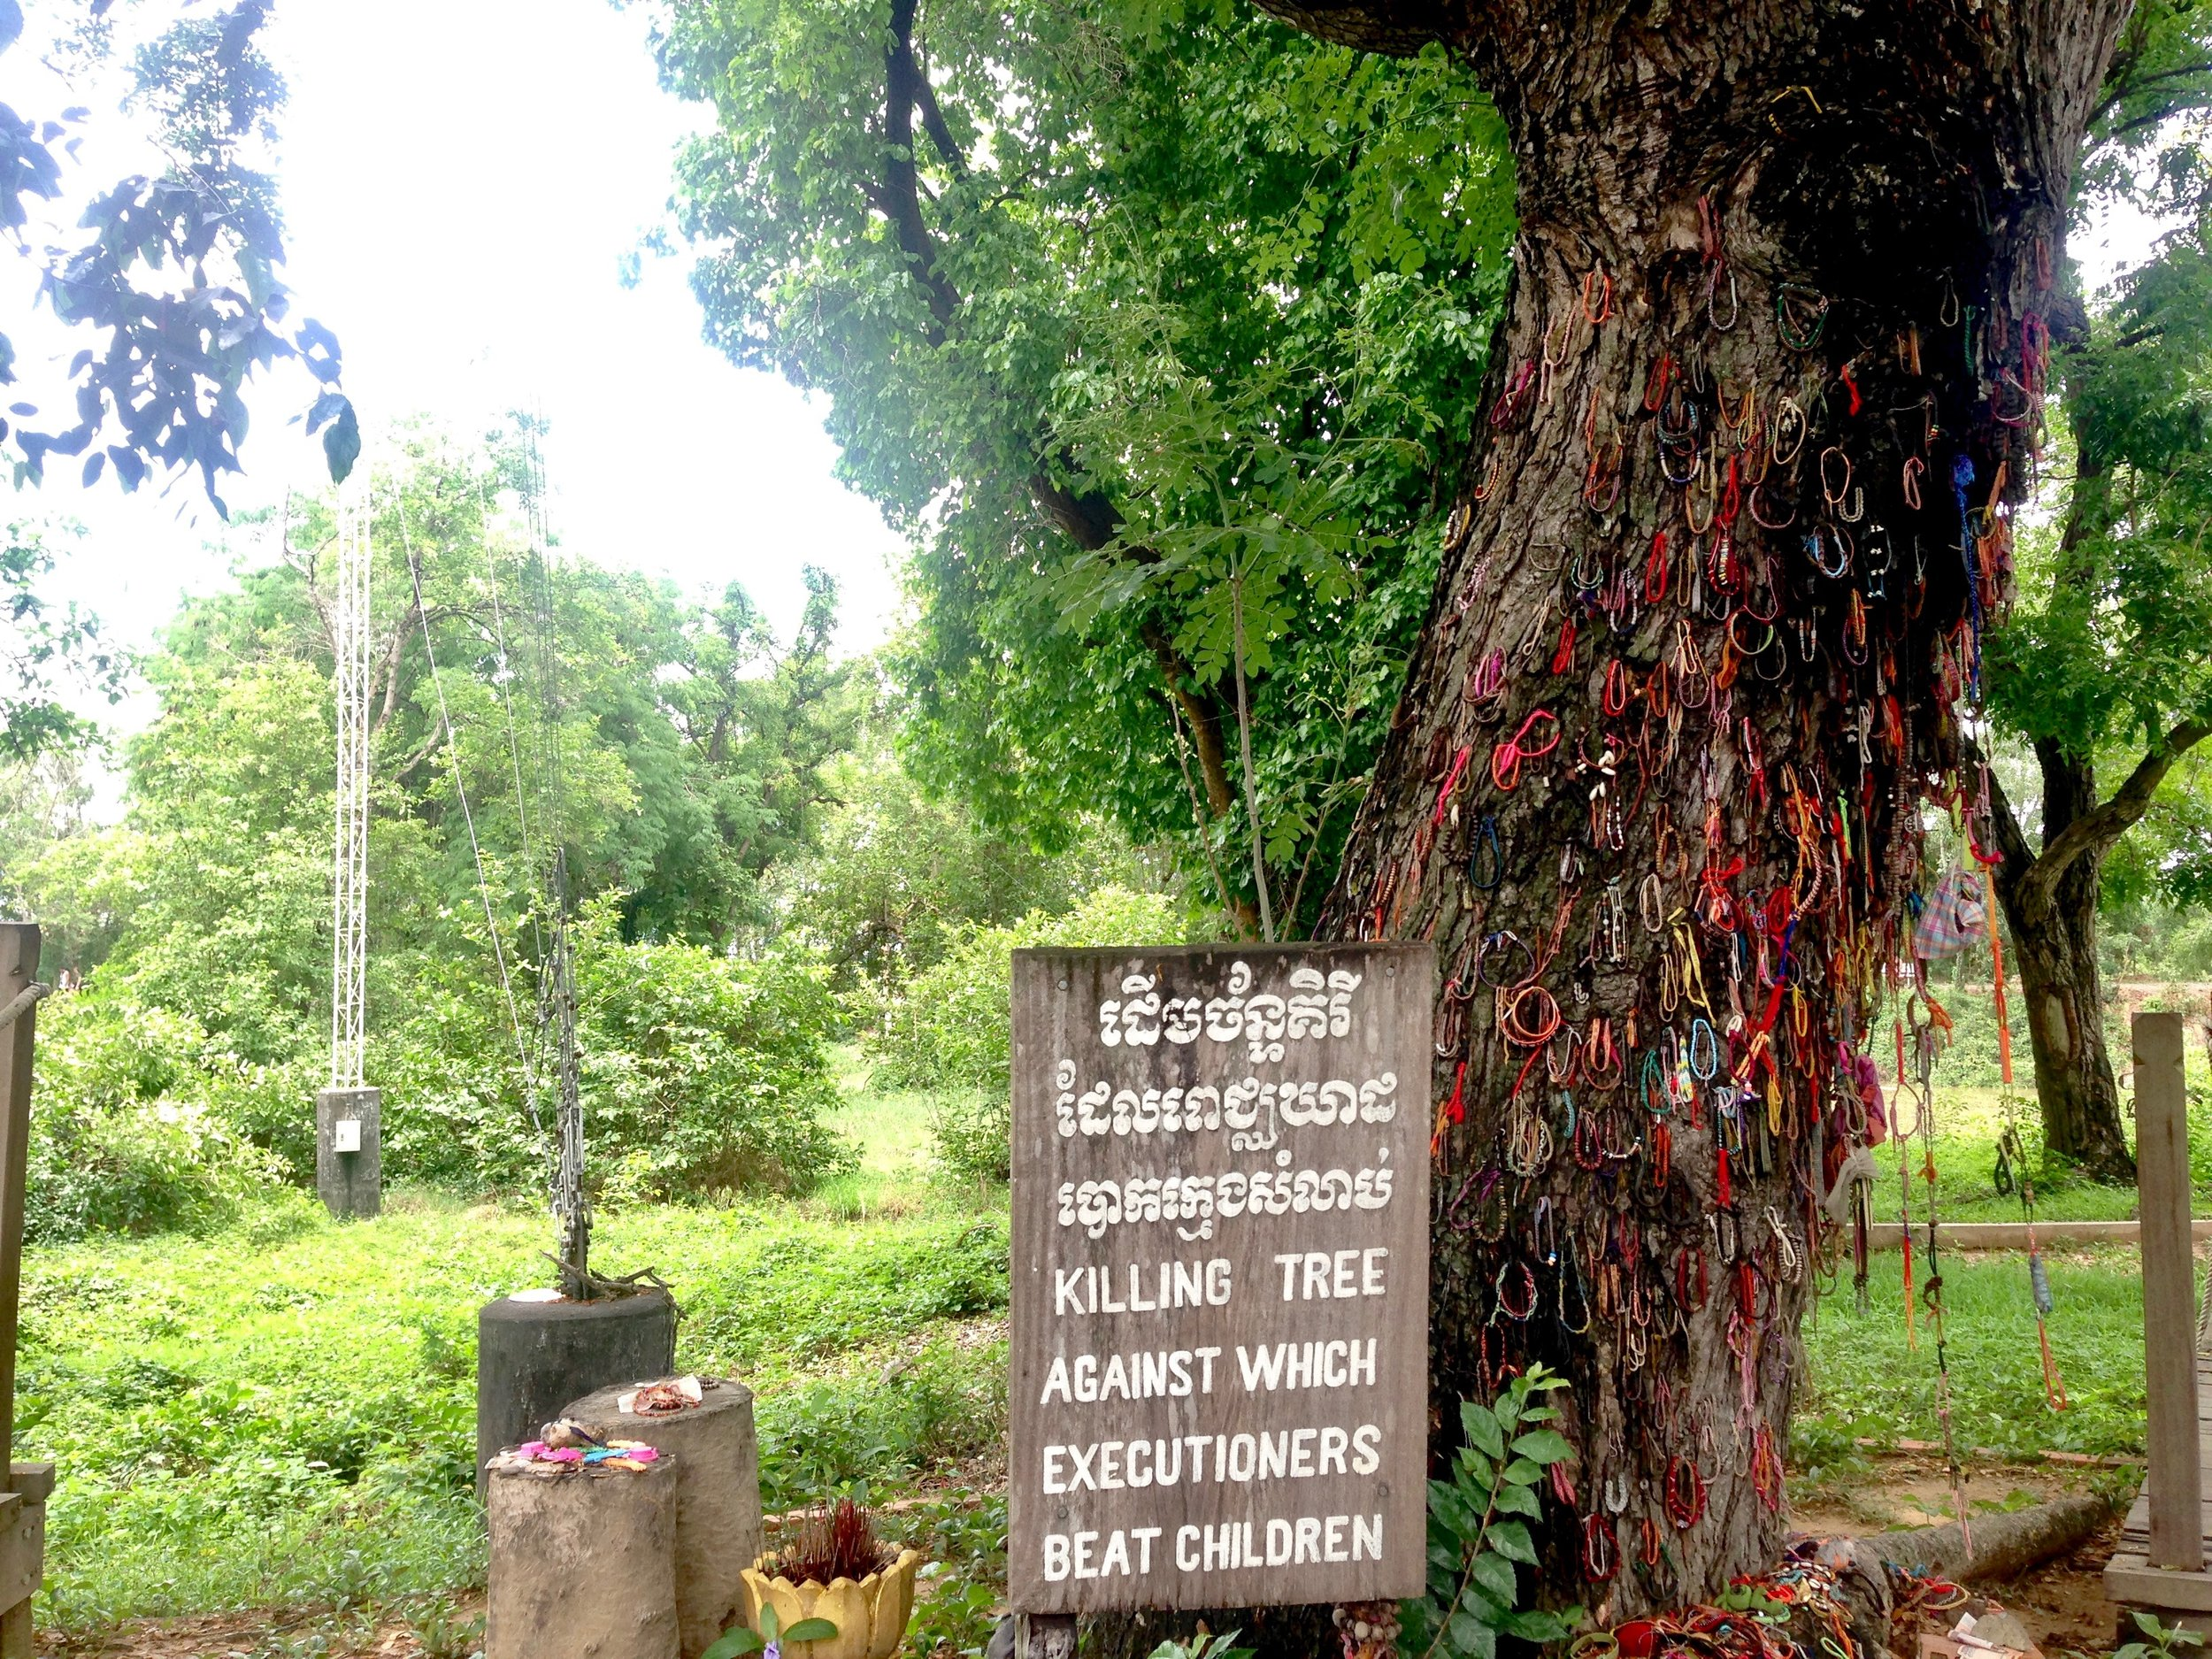 Blood stains remain on the tree for all to bear witness